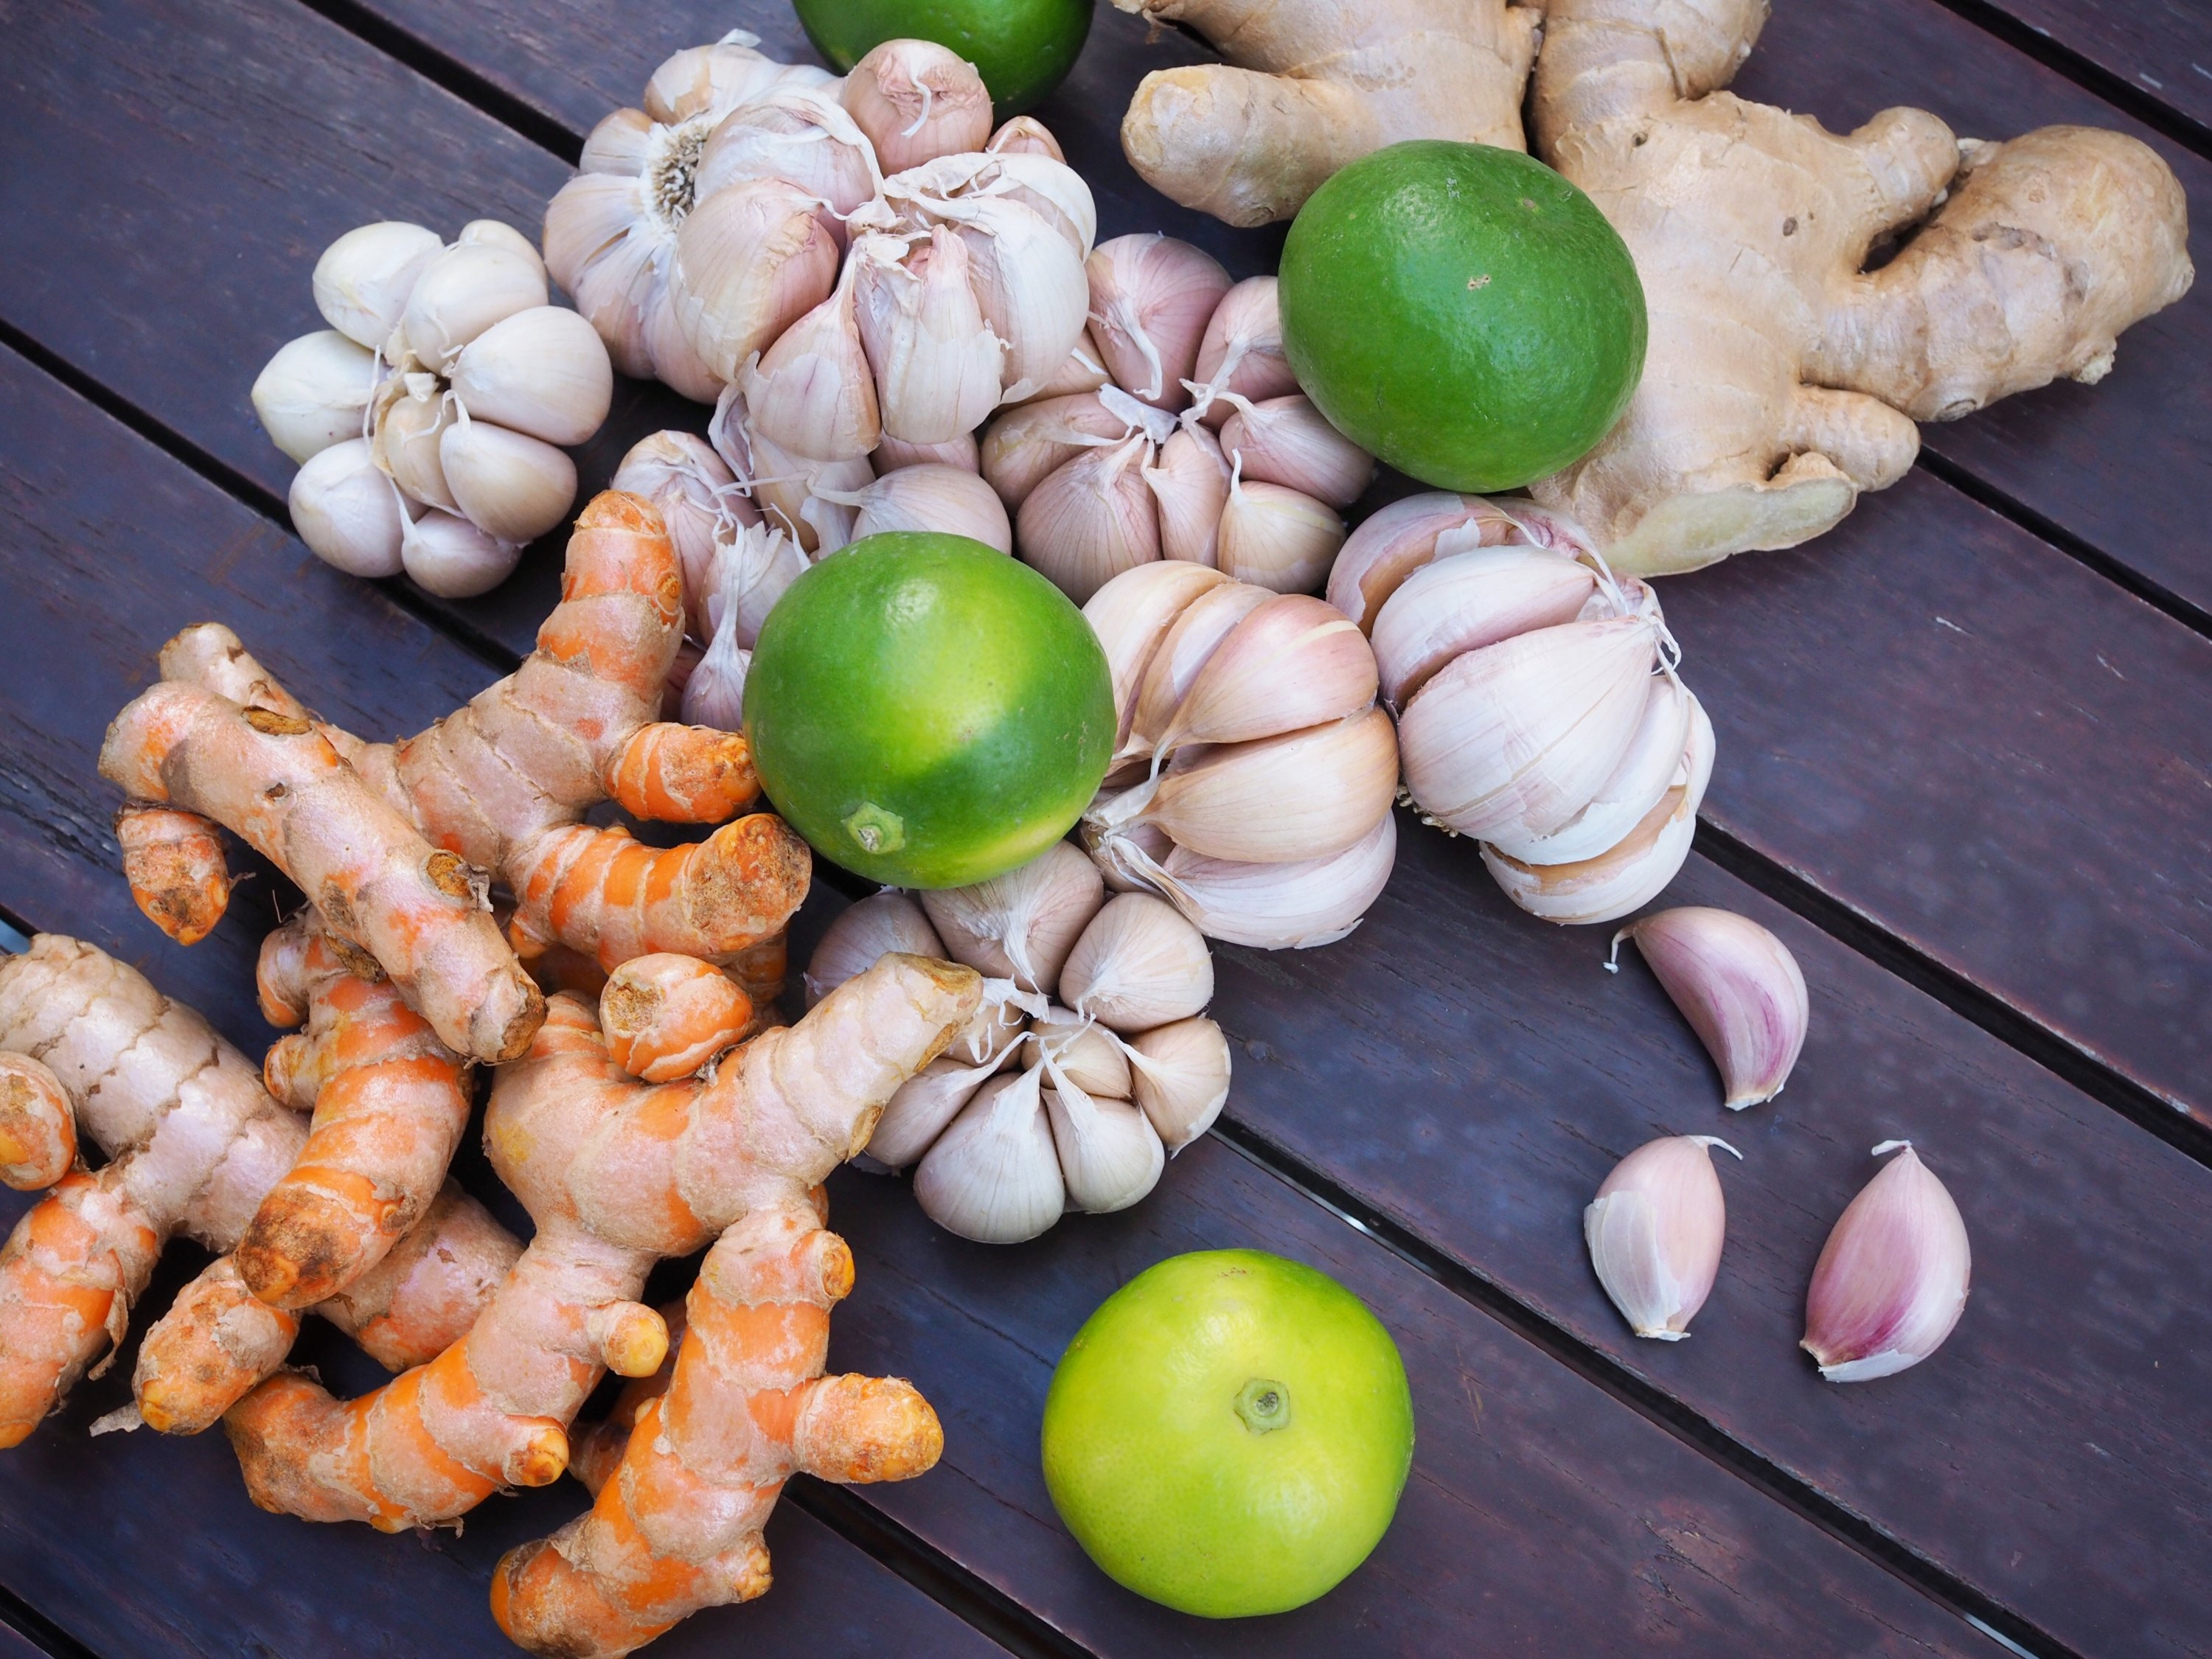 Ginger, garlic and turmeric are great immune-boosting spices to add to your meals. (Shutterstock Photo)